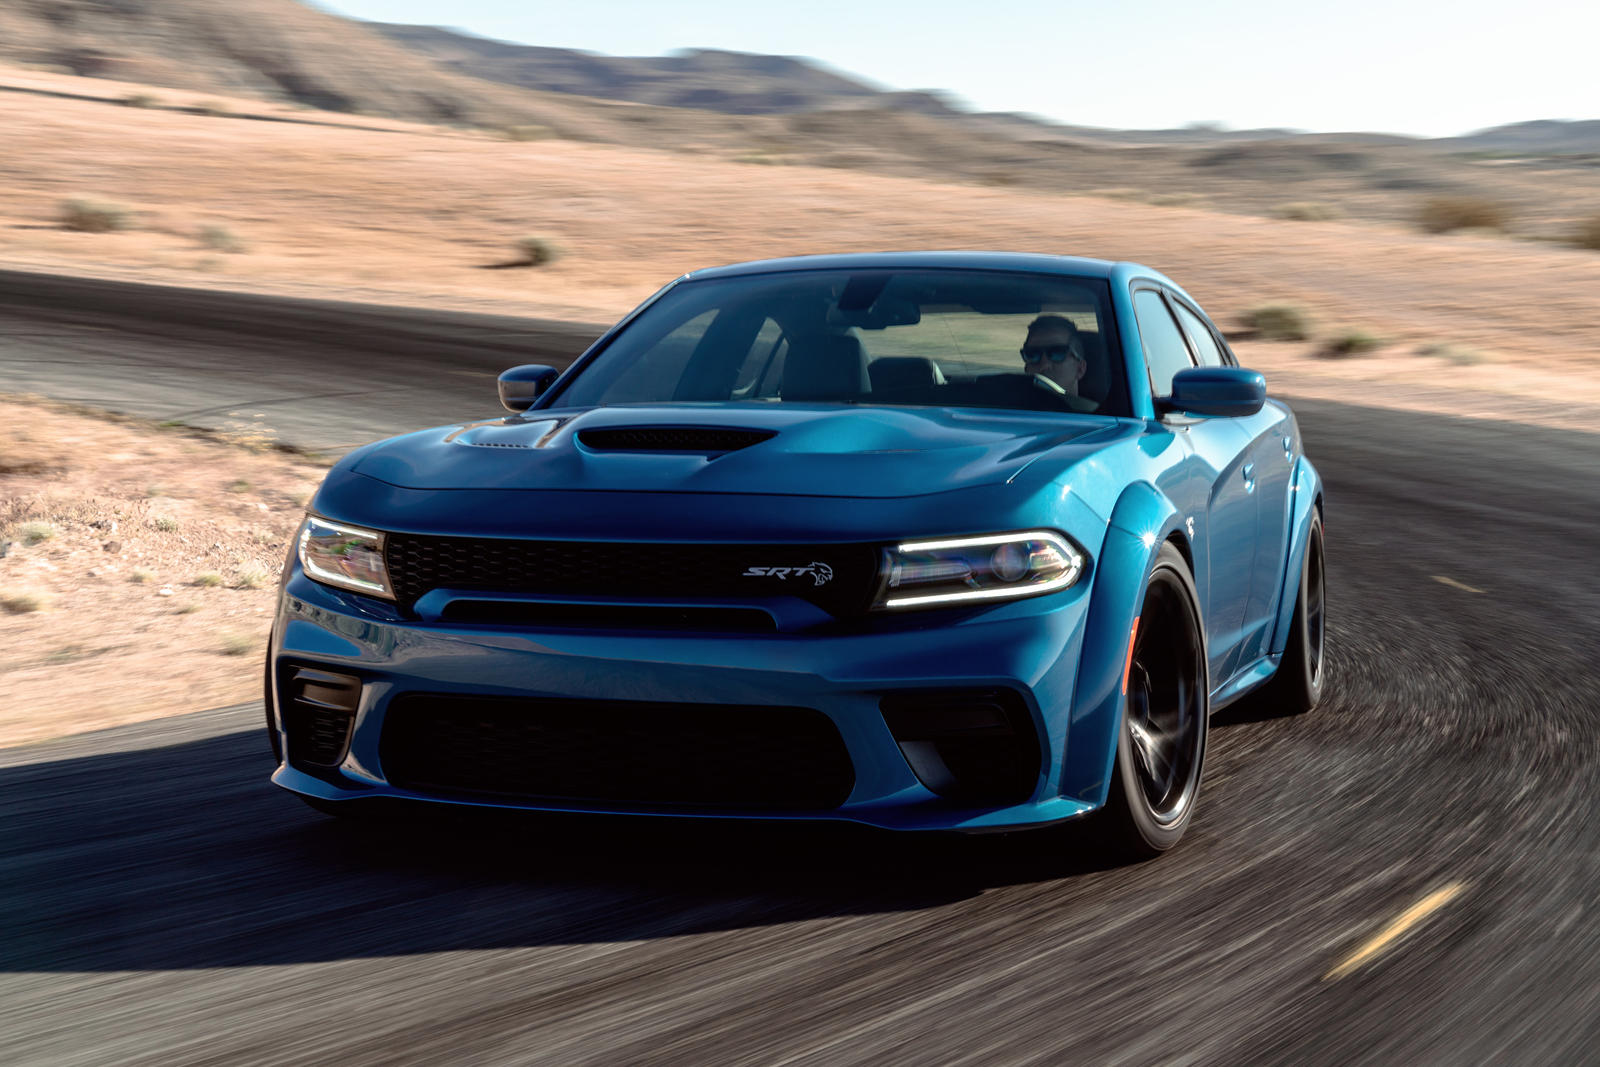 Dodge Charger Srt Hellcat Redeye Coming Sooner Than We Thought Carbuzz